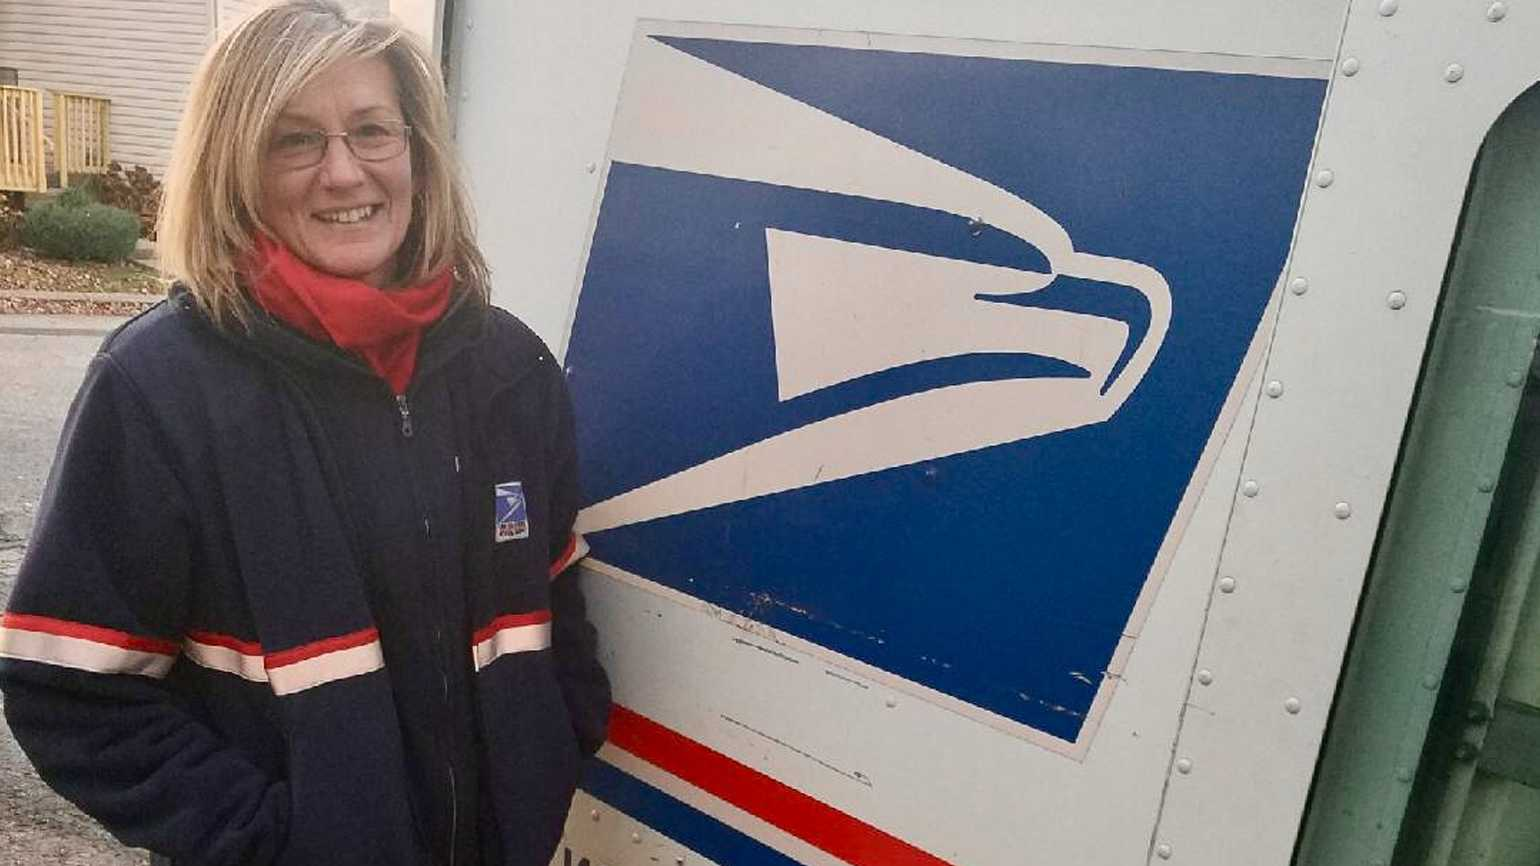 Mail carrier Lisa Sweeney by her mail truck